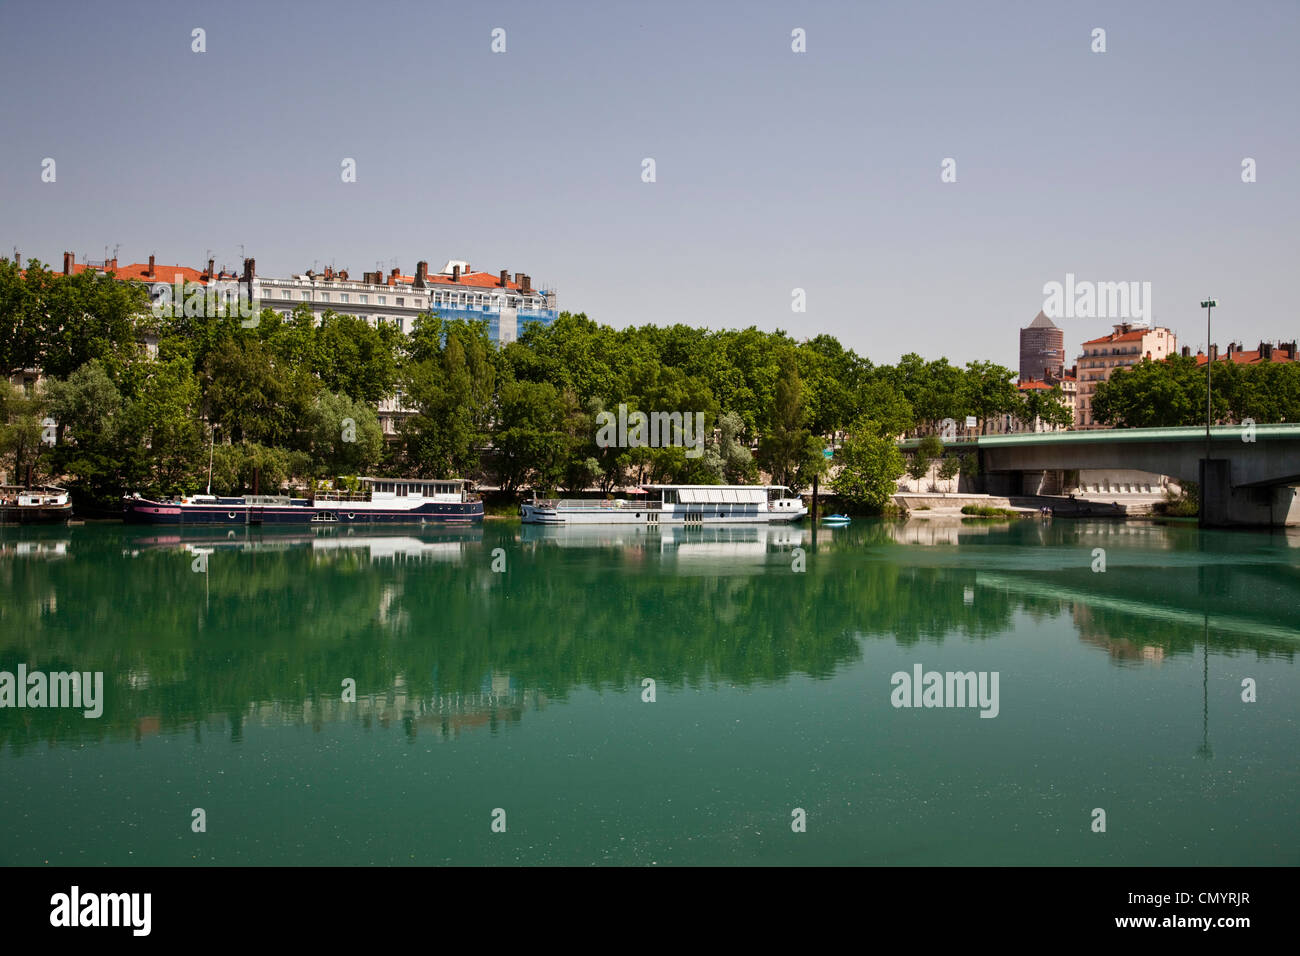 Rhone riverside, house boats, Lyon, Rhone Alps, France Stock Photo